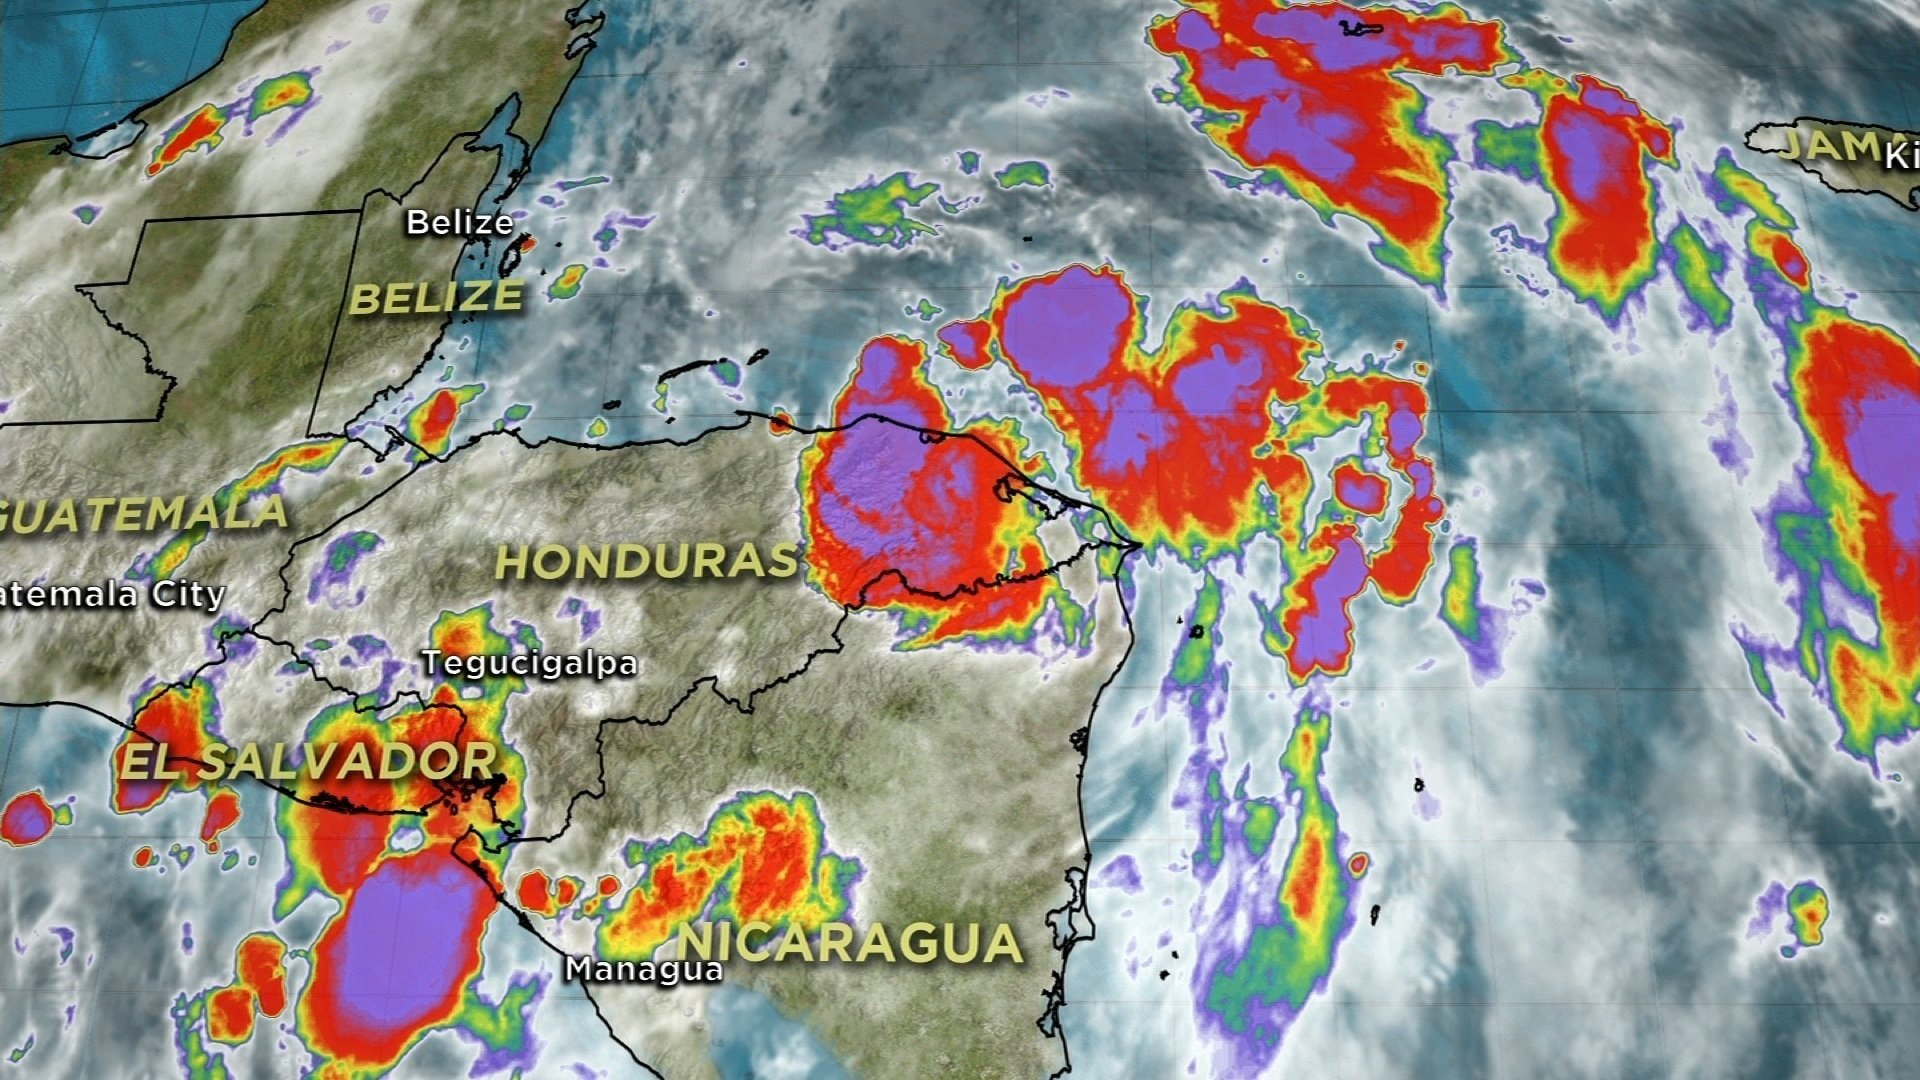 After battering portions of Central America, Tropical Storm Nate is expected to reach the US Gulf Coast this weekend as a hurricane. courtesy of CNN.